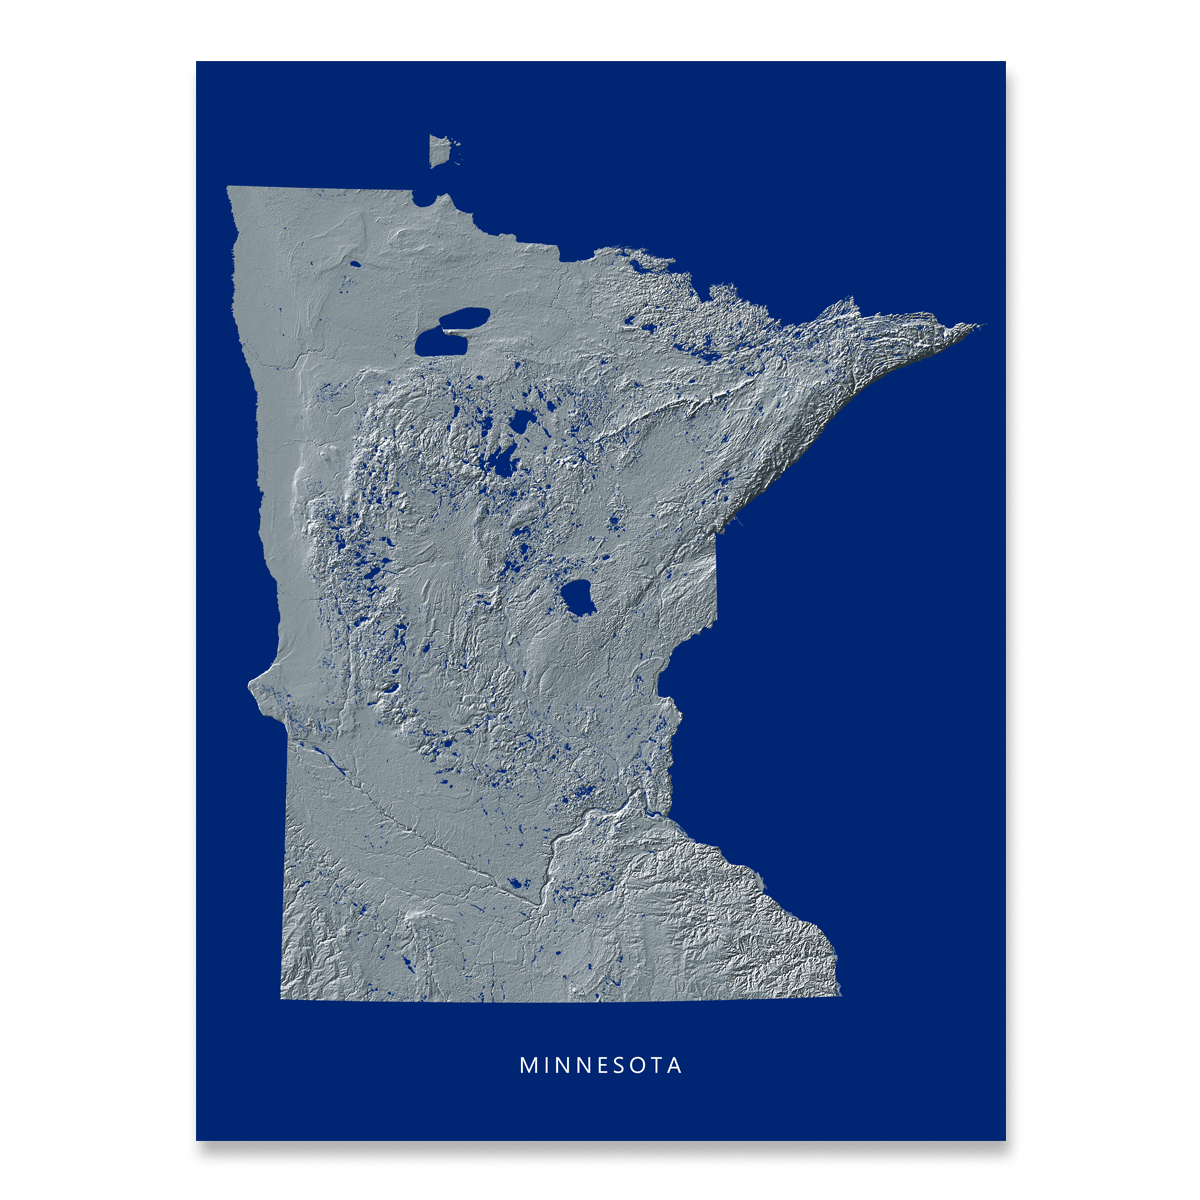 Minnesota Map Png.Minnesota Map Print Navy Landscape Maps As Art